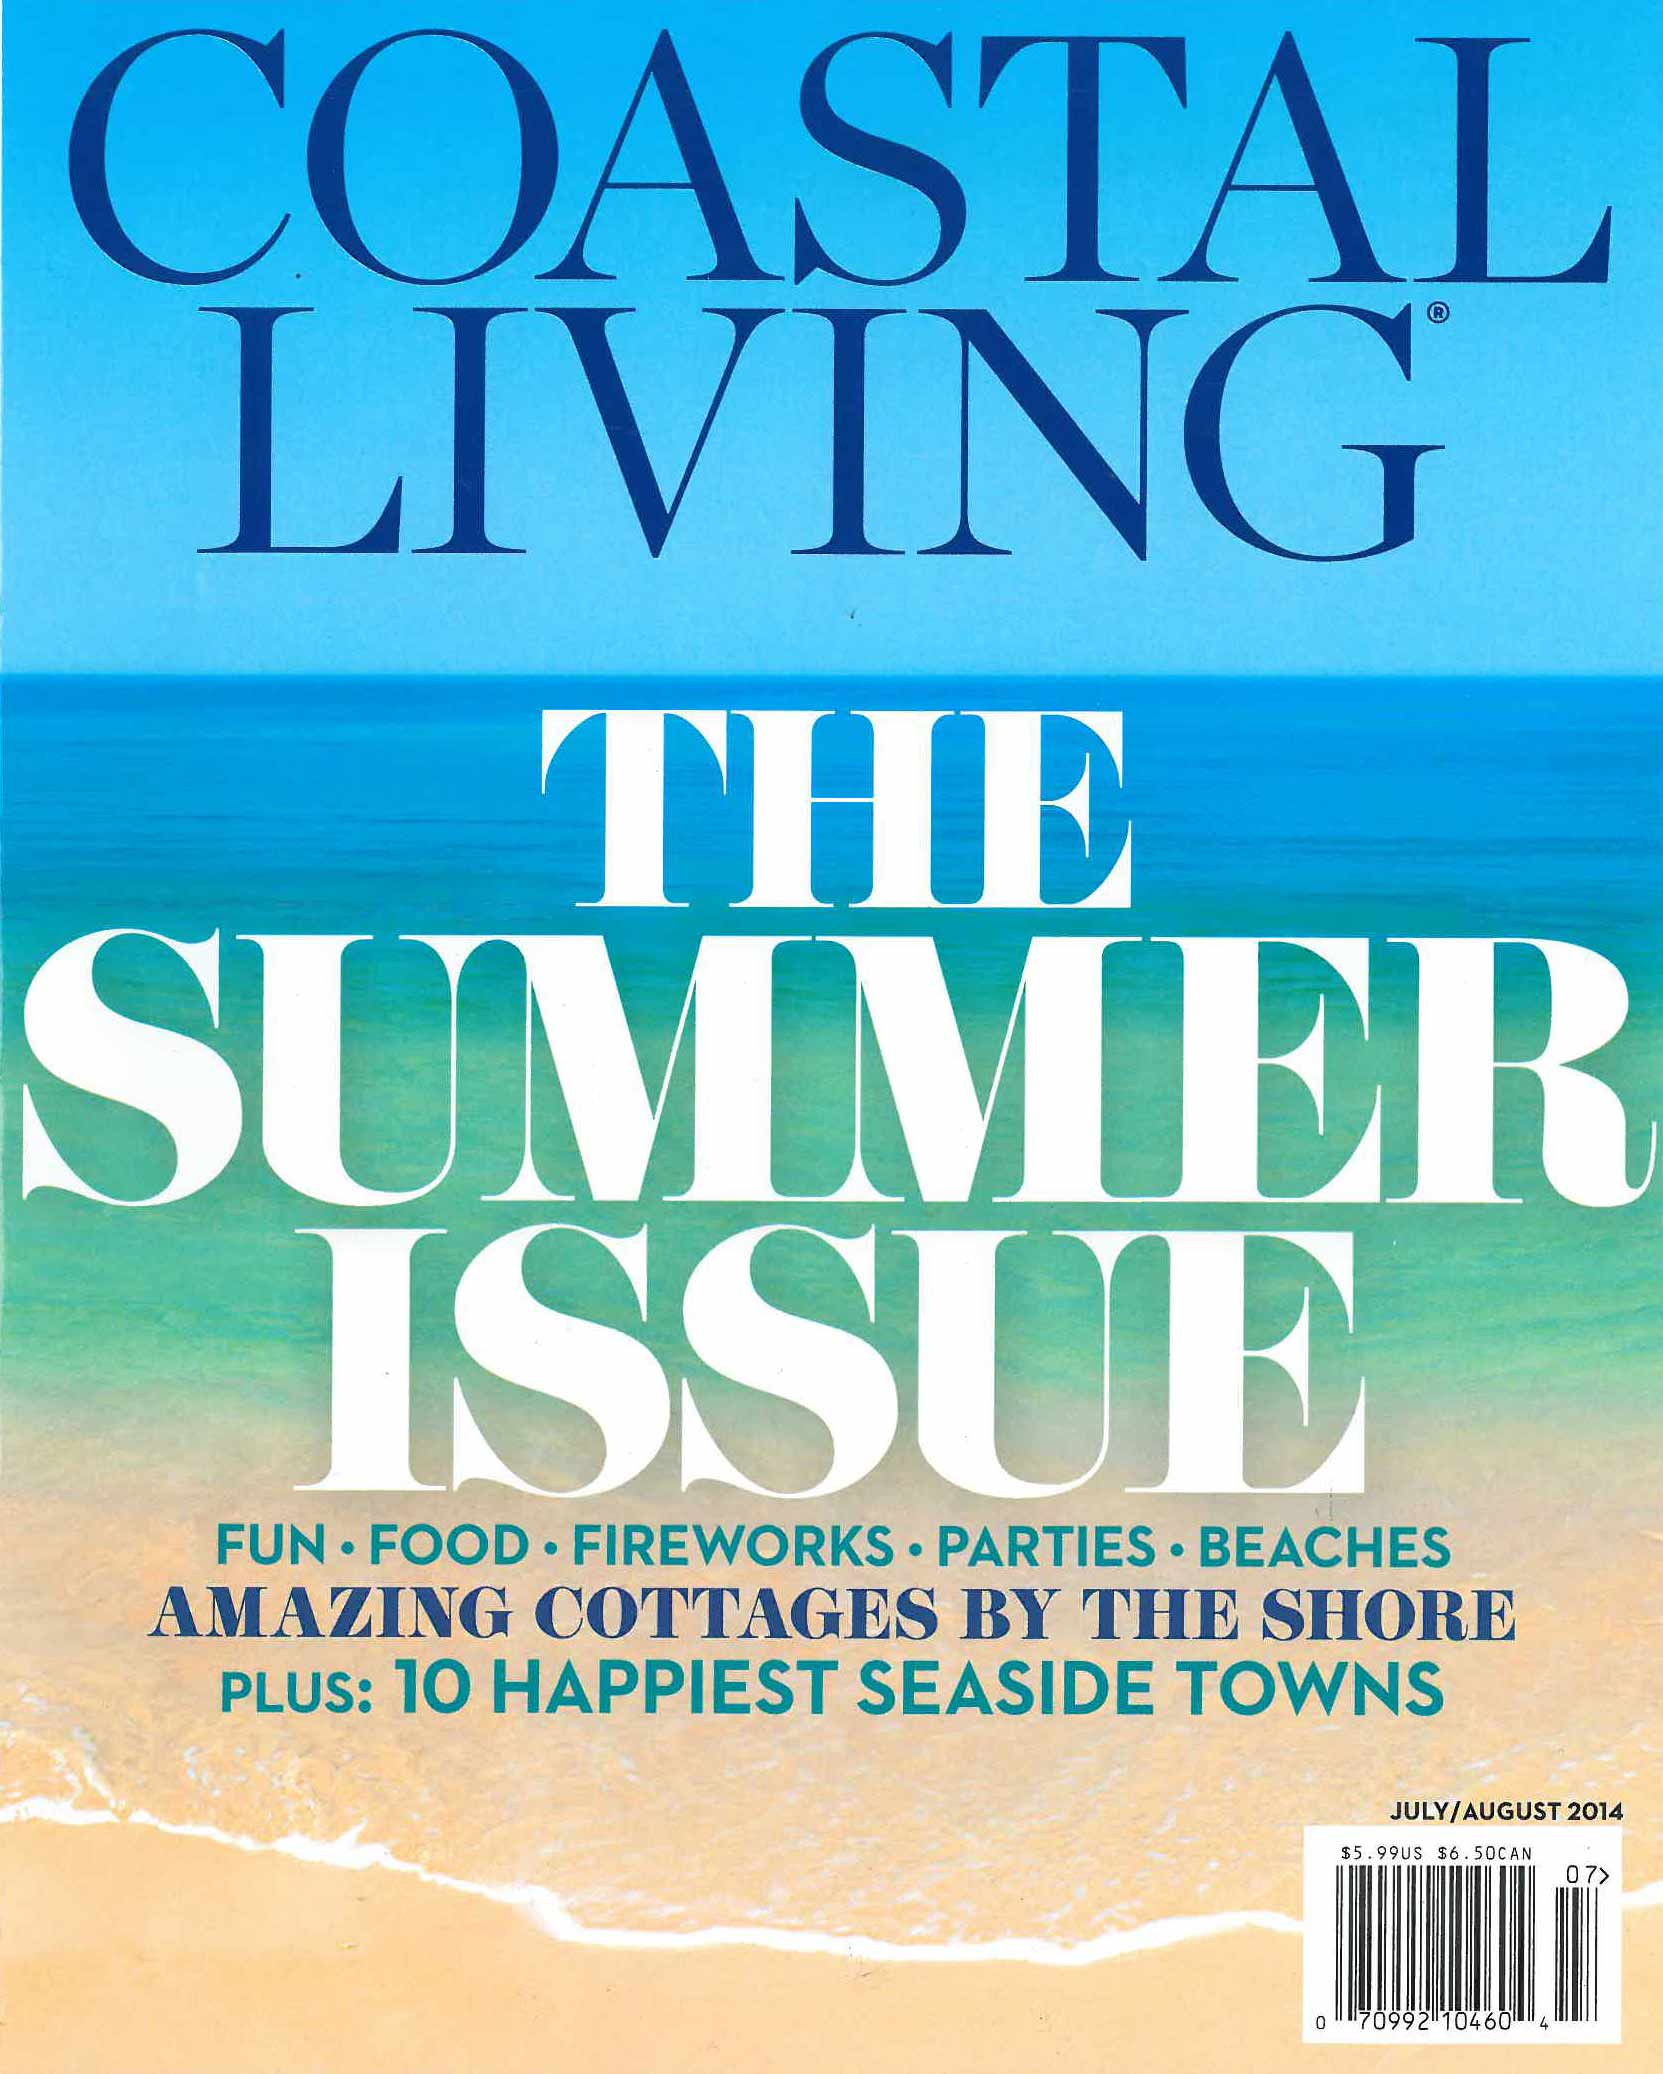 Coastal Living July/August 2014